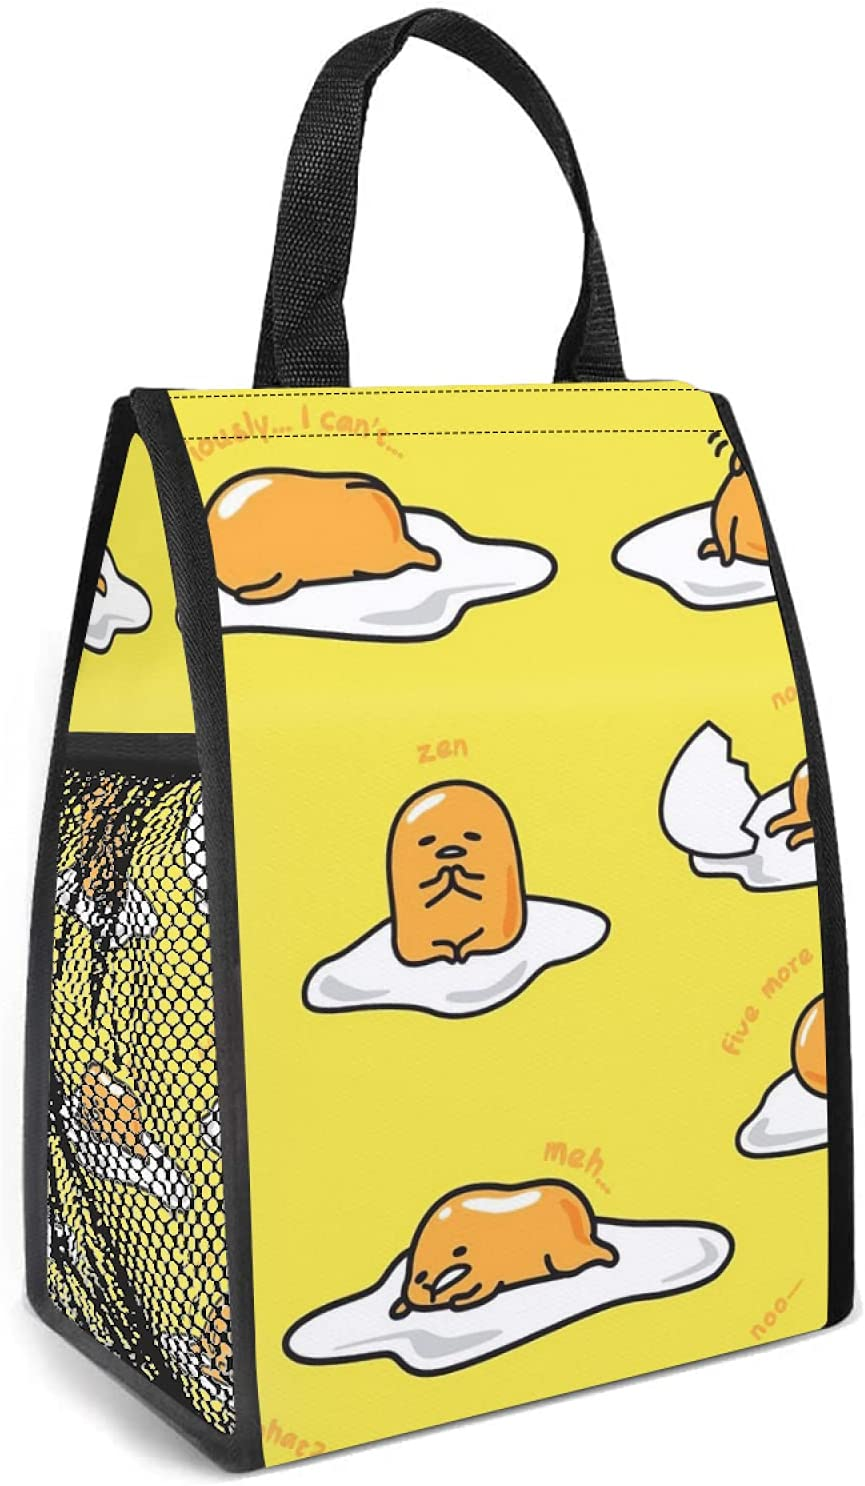 Love fled Gudetama Coffee Lunch Bag Women & Men Tote Insulated Cooler Bag, Portable Lunch Box Container, Resistant Thermal Food Bags for Work, Picnic, Travel, School. One Size